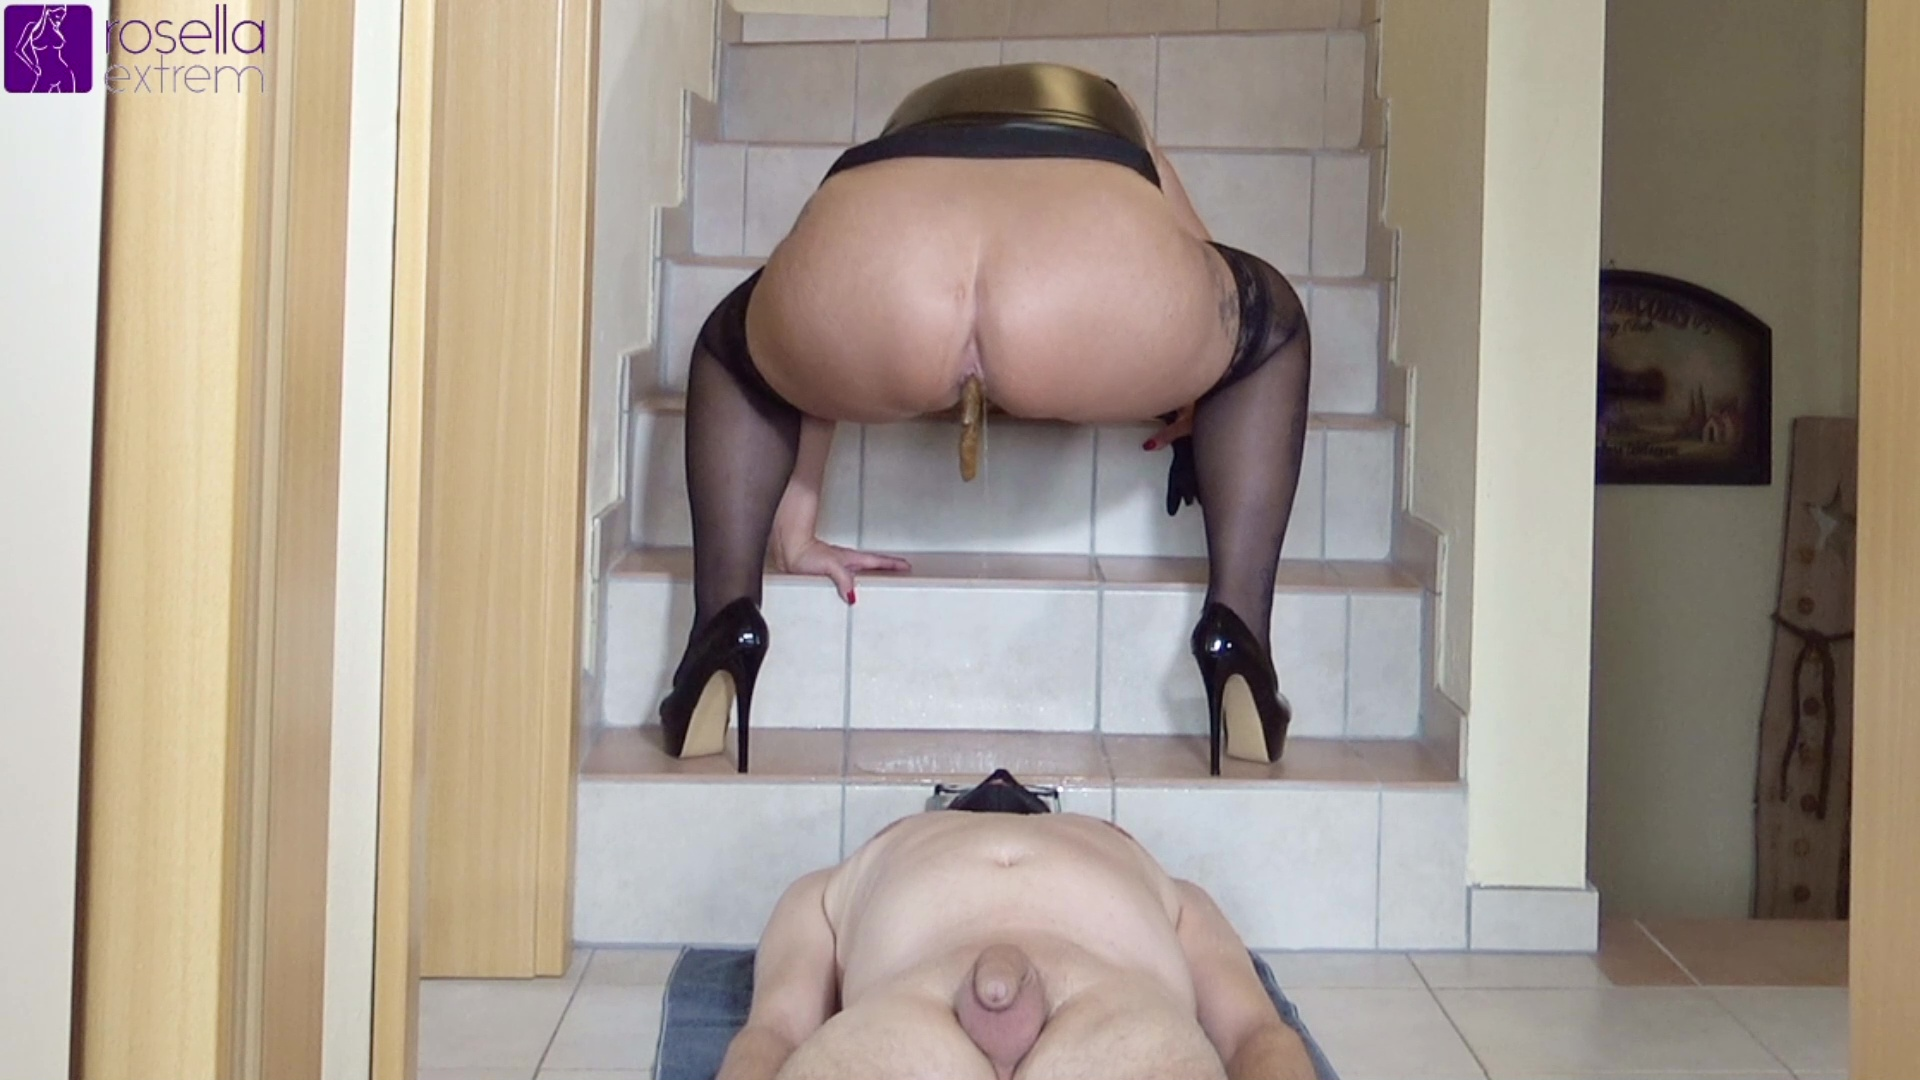 RosellaExtrem - Next slave meal on heels! Part 2